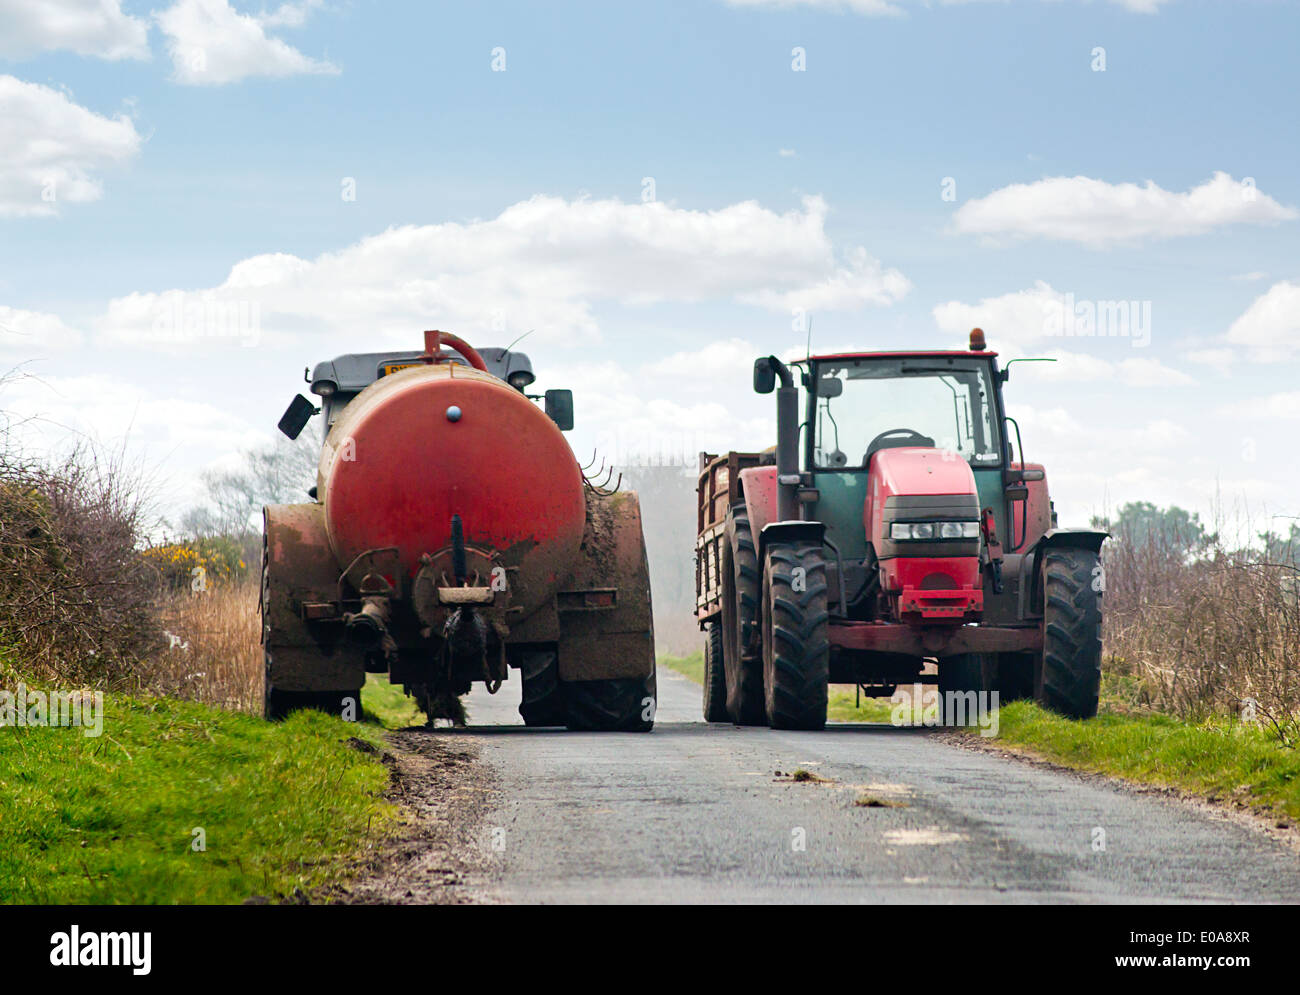 Country lane being blocked by tractors a common driving hazard during spring. - Stock Image